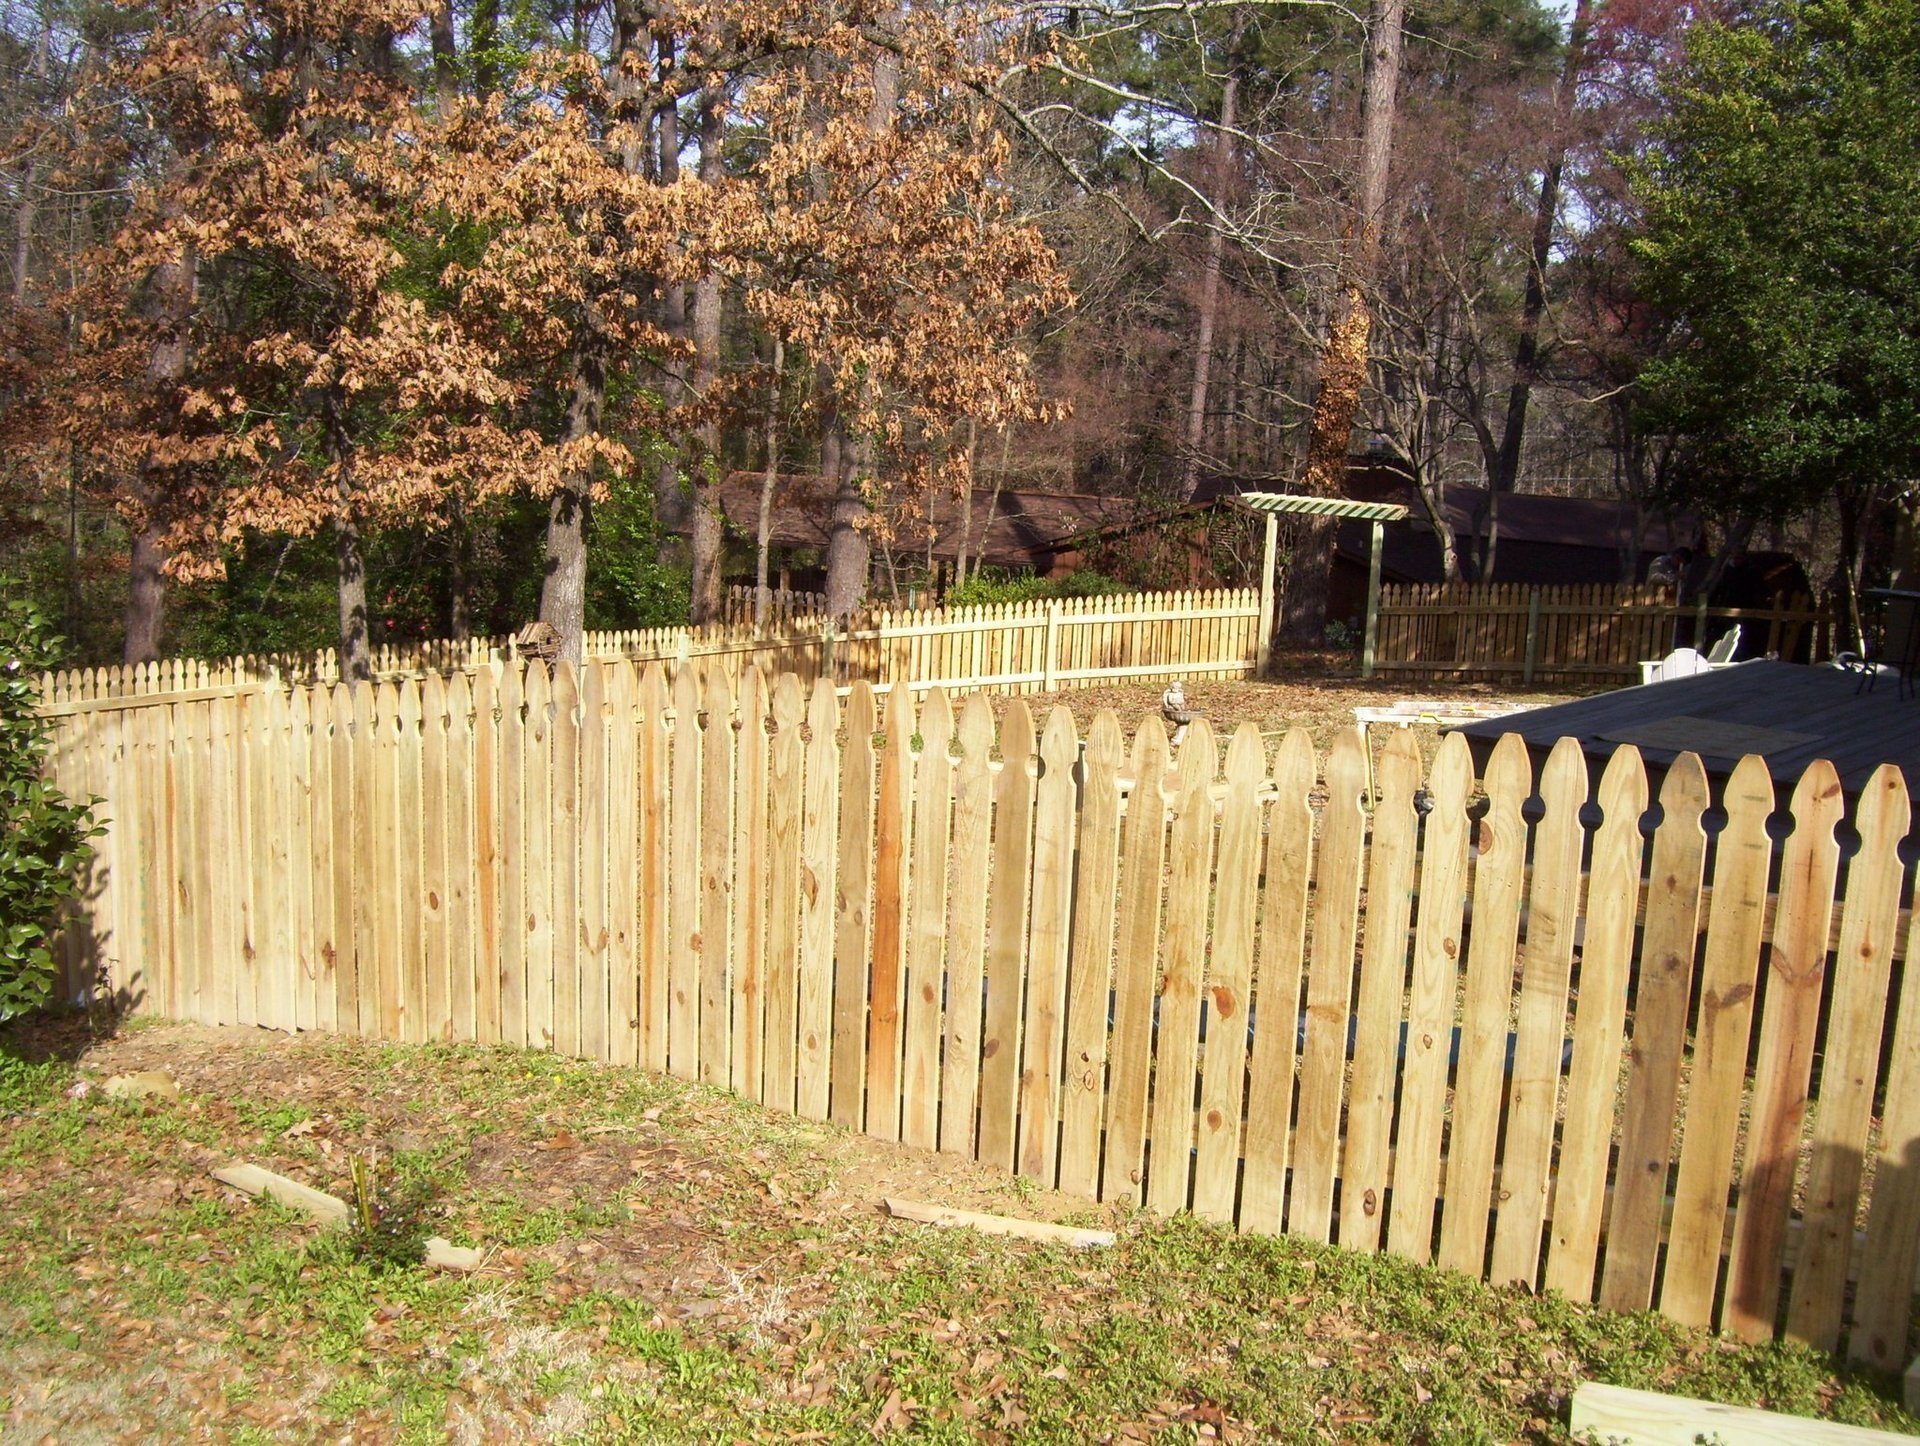 Outdoor fences